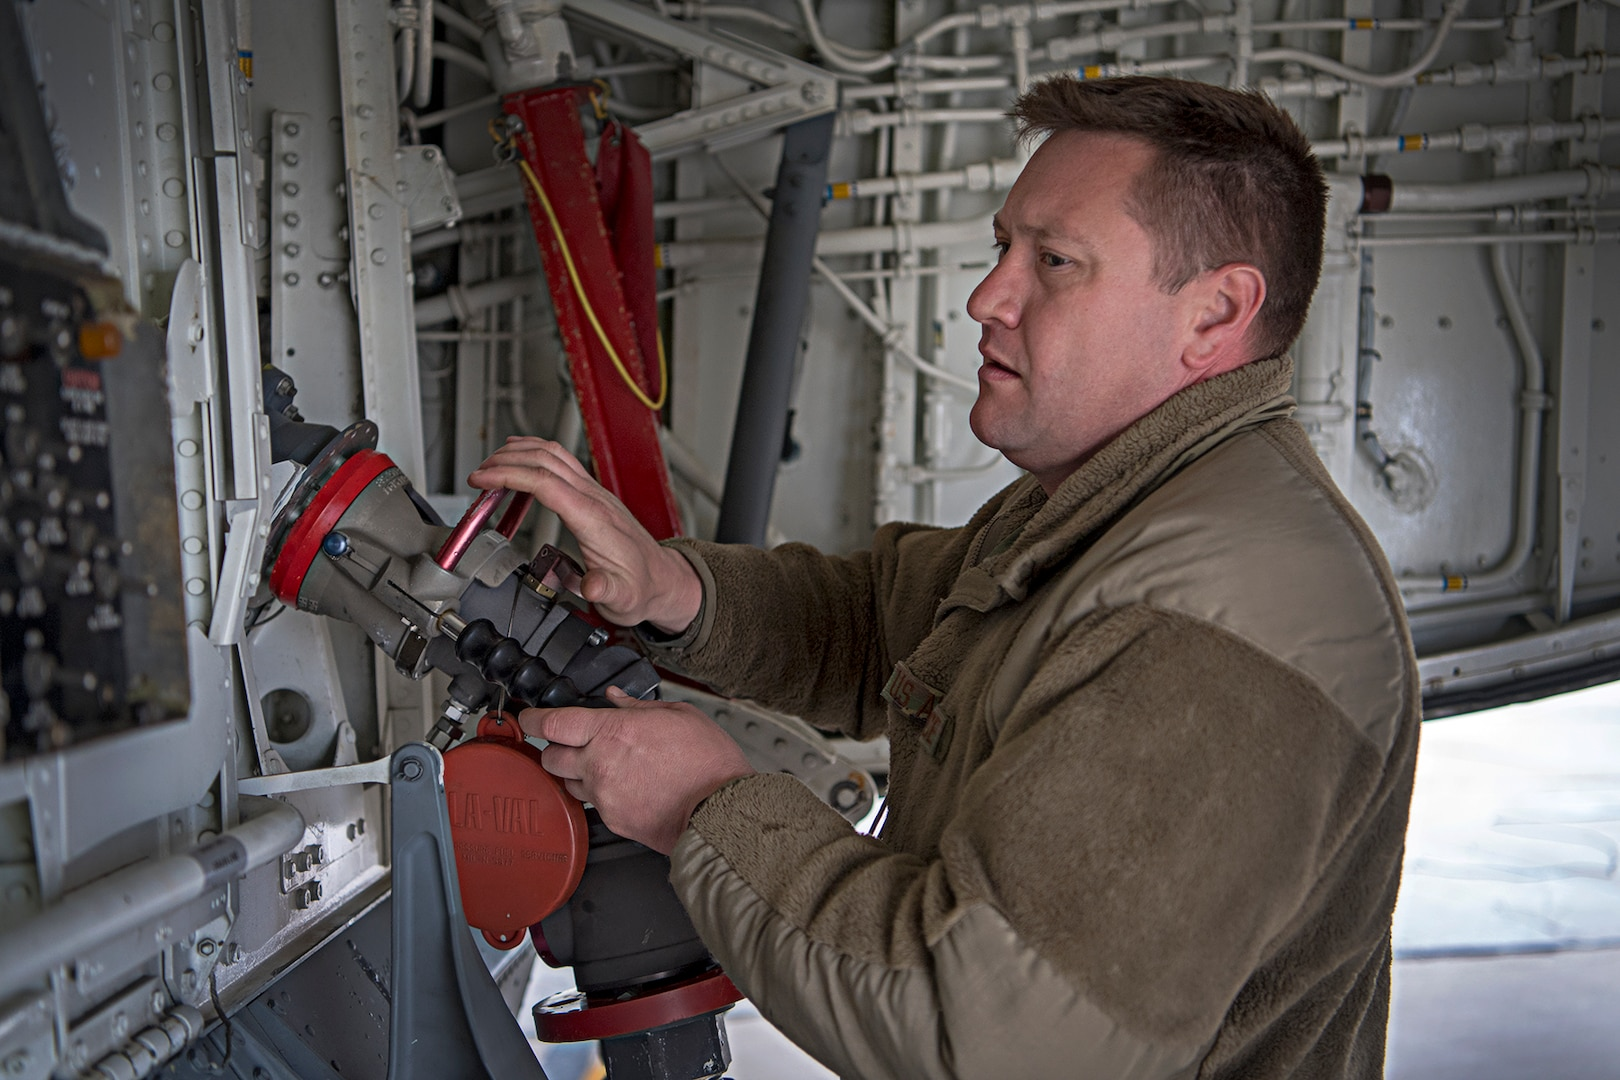 Tech. Sgt. Jason Jessup, 434th Maintenance Squadron, hooks a hose to a Grissom KC-135R Stratotanker to pump fuel on board. A $35 million Type III fuel hydrant system became operational at Grissom fueling unit capabilities into the future. (U.S. Air Force photo/Douglas Hays)